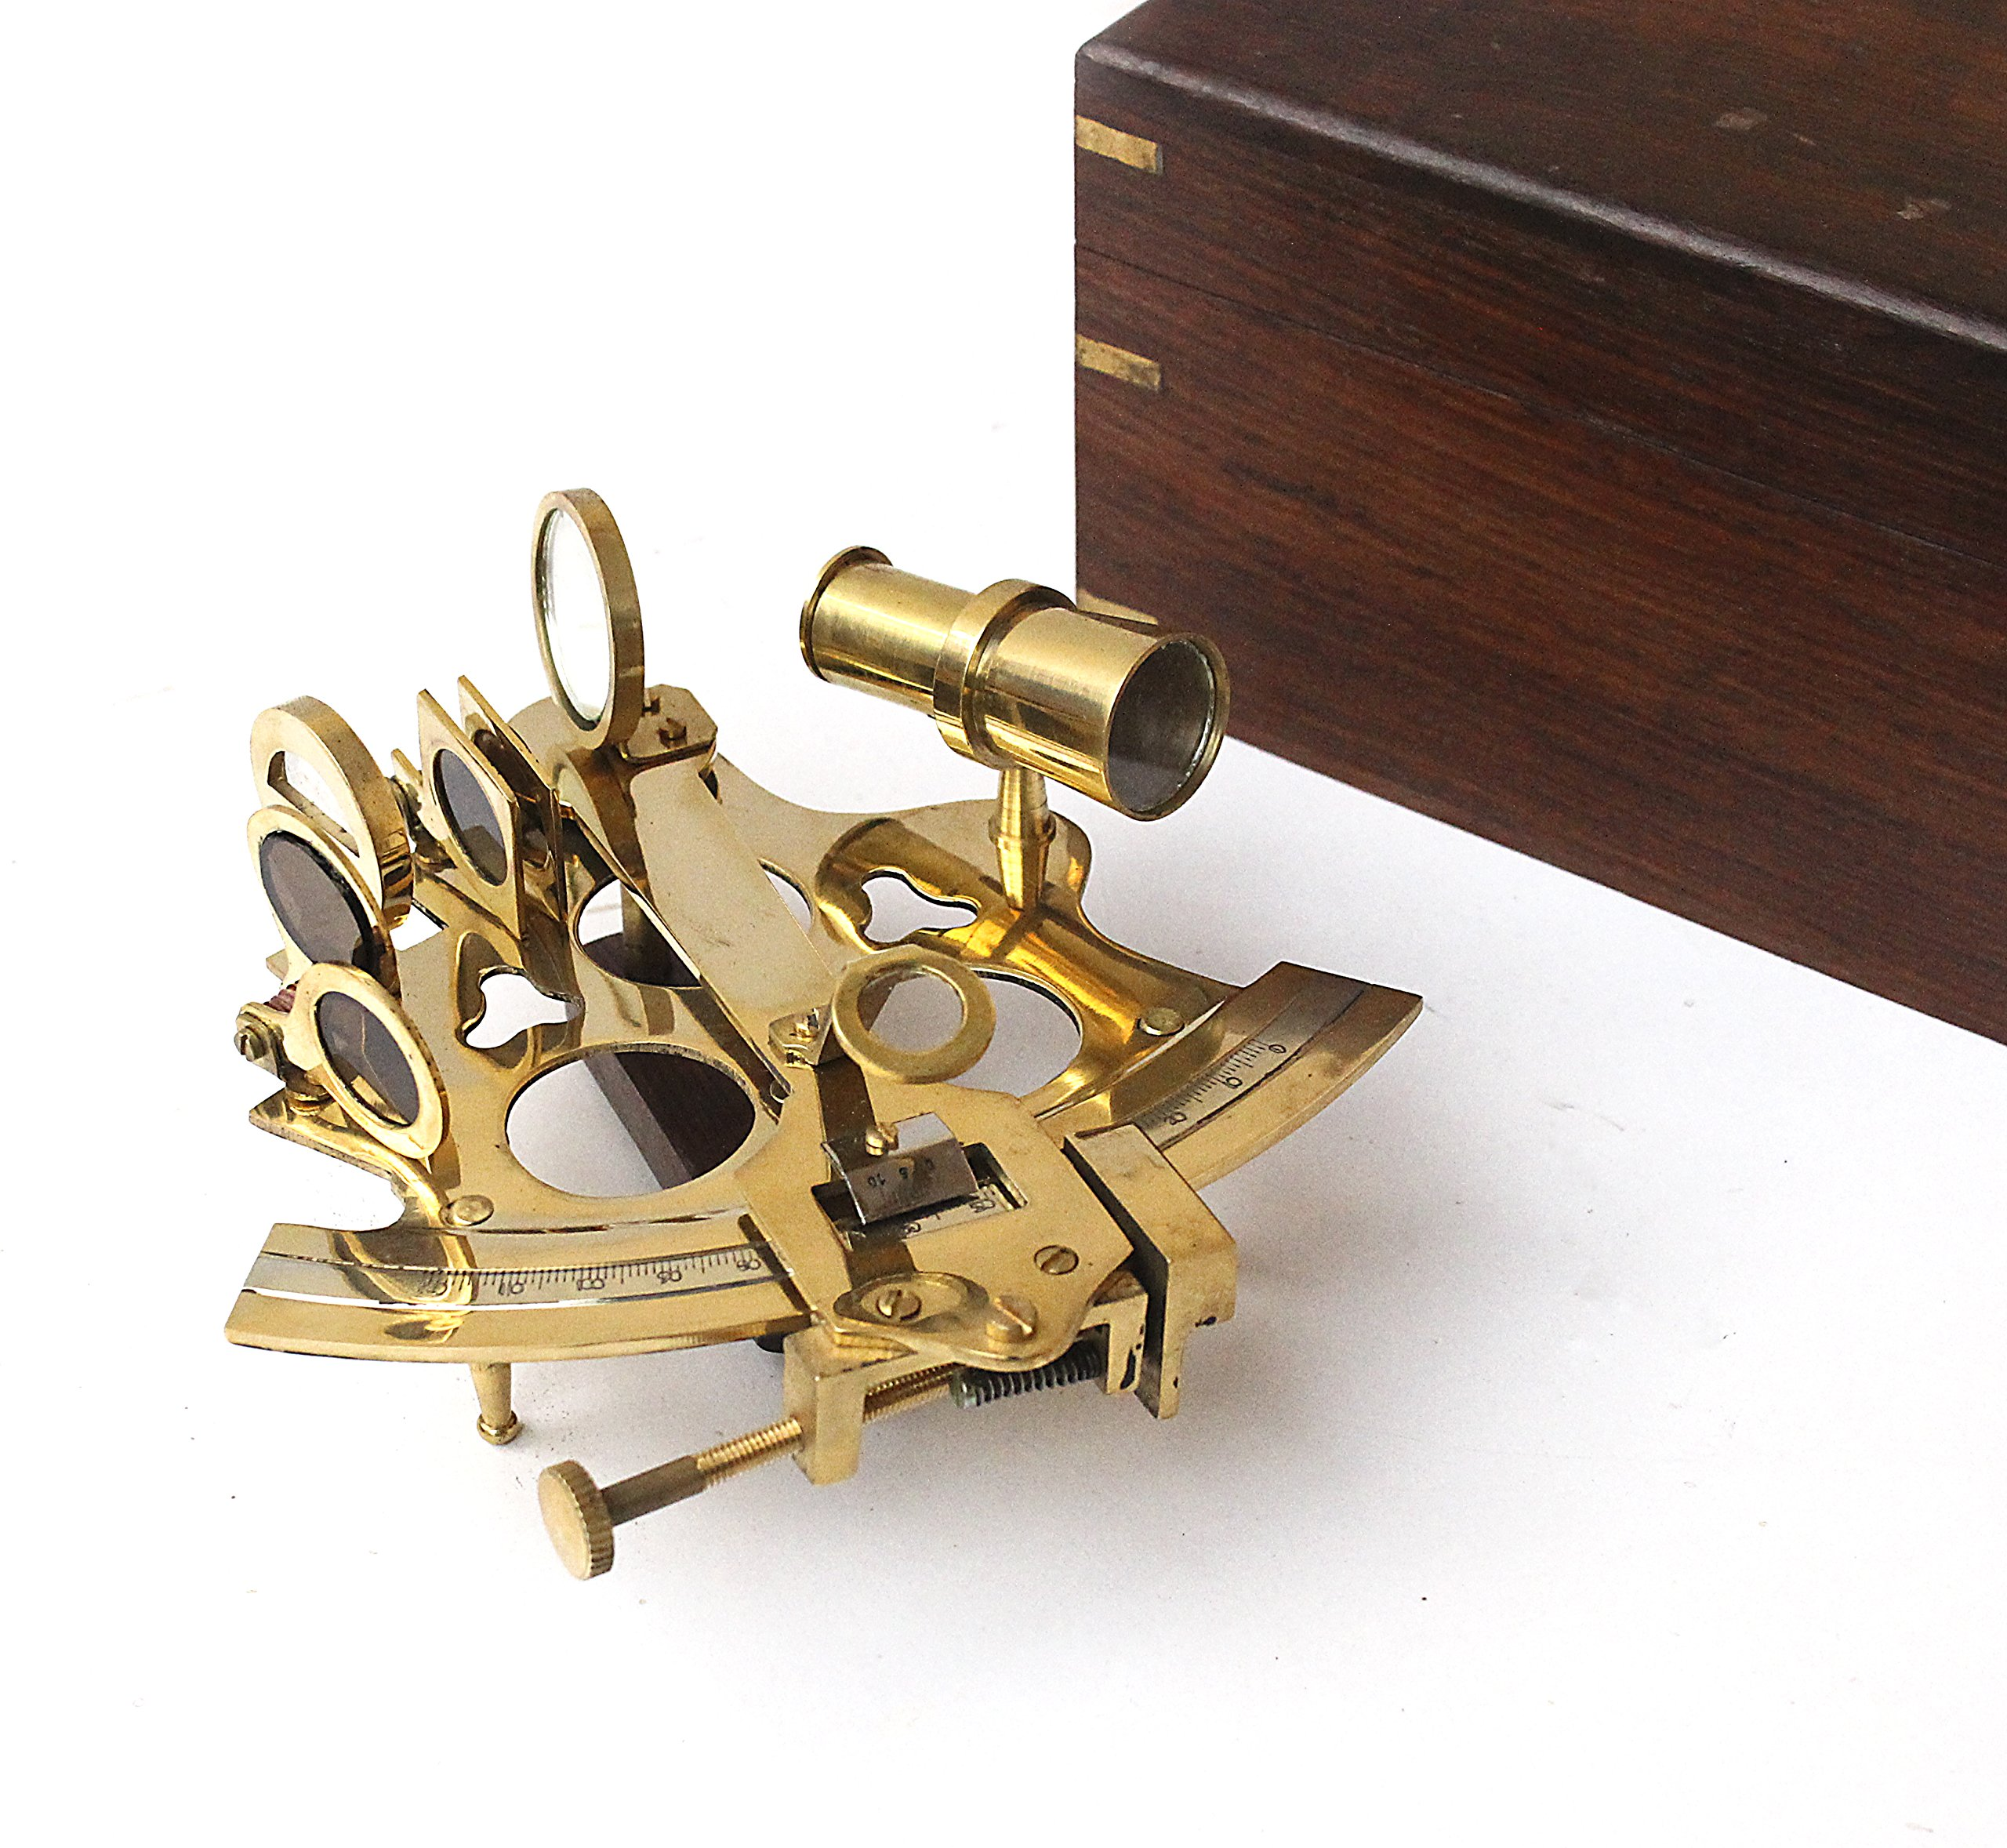 Collectibles Buy Shiny Brass Nautical Vintage Sextant with Classical Wooden Brown Box Telescope